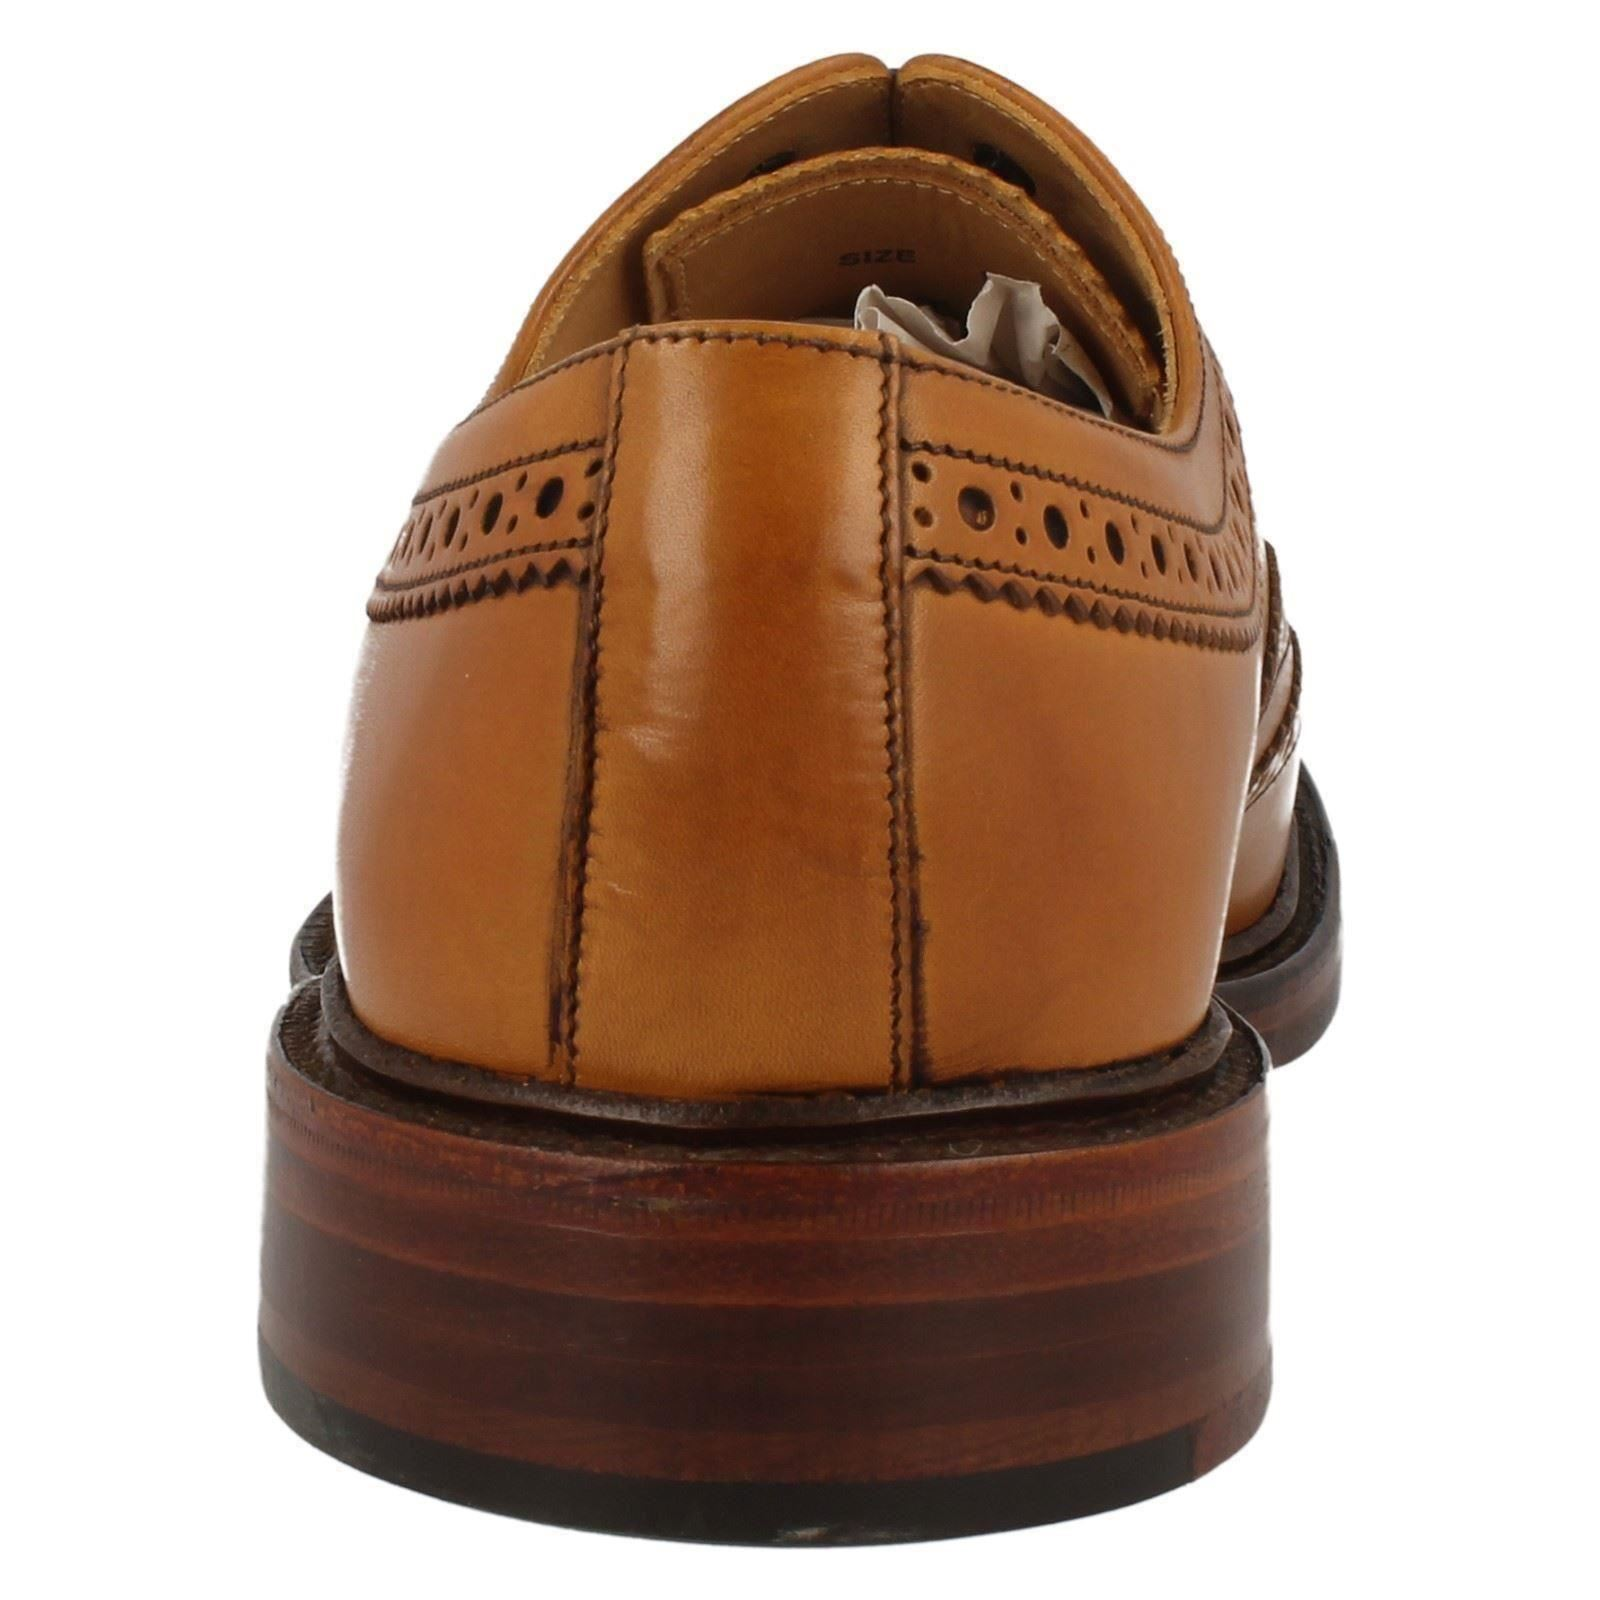 Style Loake Cuir Hommes Classique Marron Chaussures 'ashby' CrdtshQ